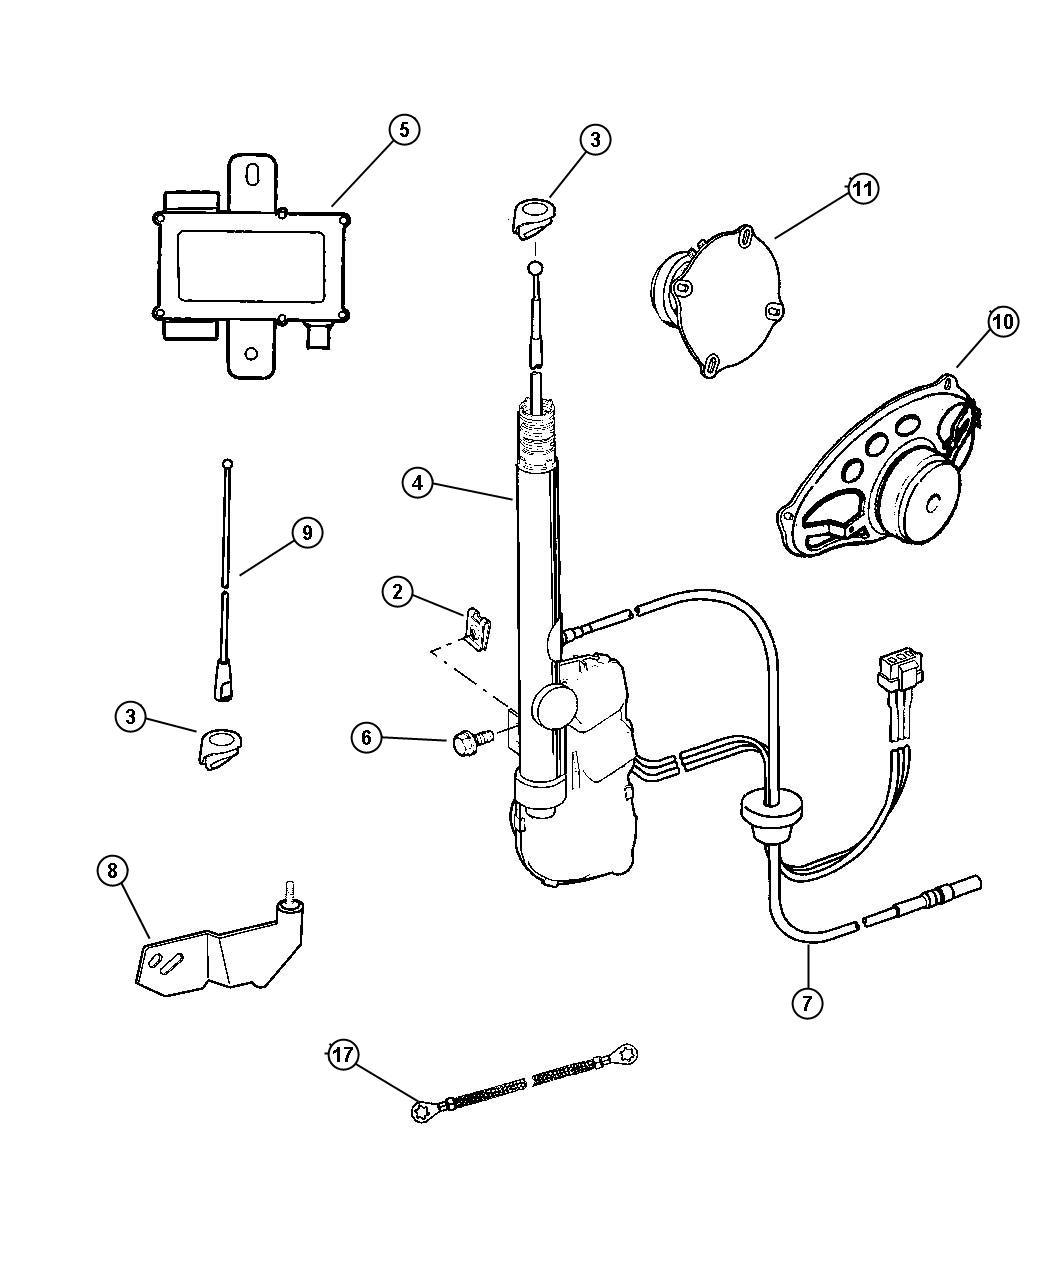 2000 dodge intrepid parts diagram 1986 yamaha g1 golf cart wiring 1997 engine free